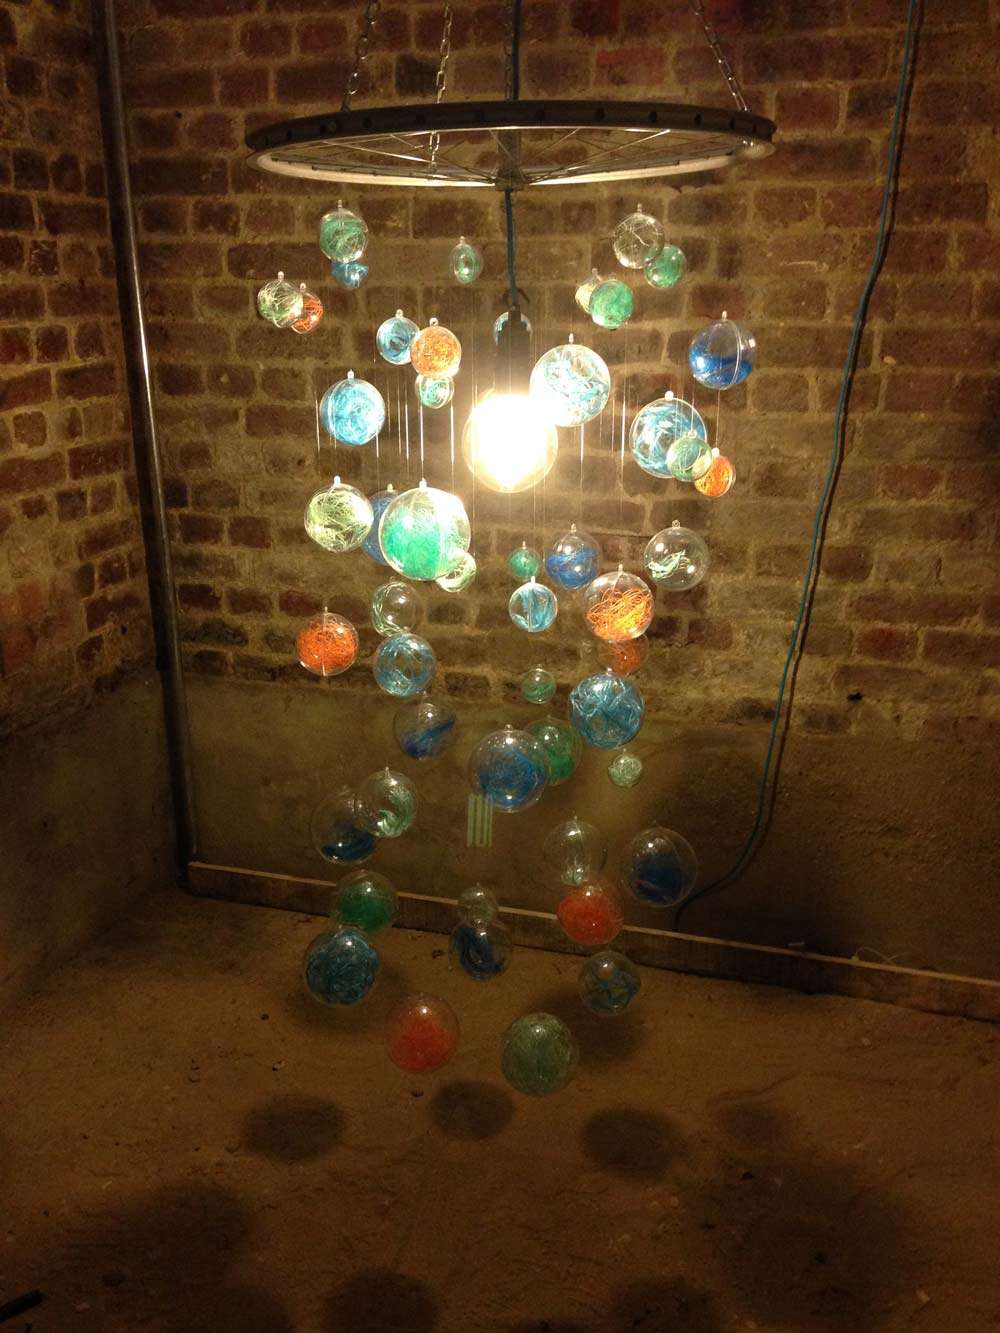 claire potter ghost gear chandelier